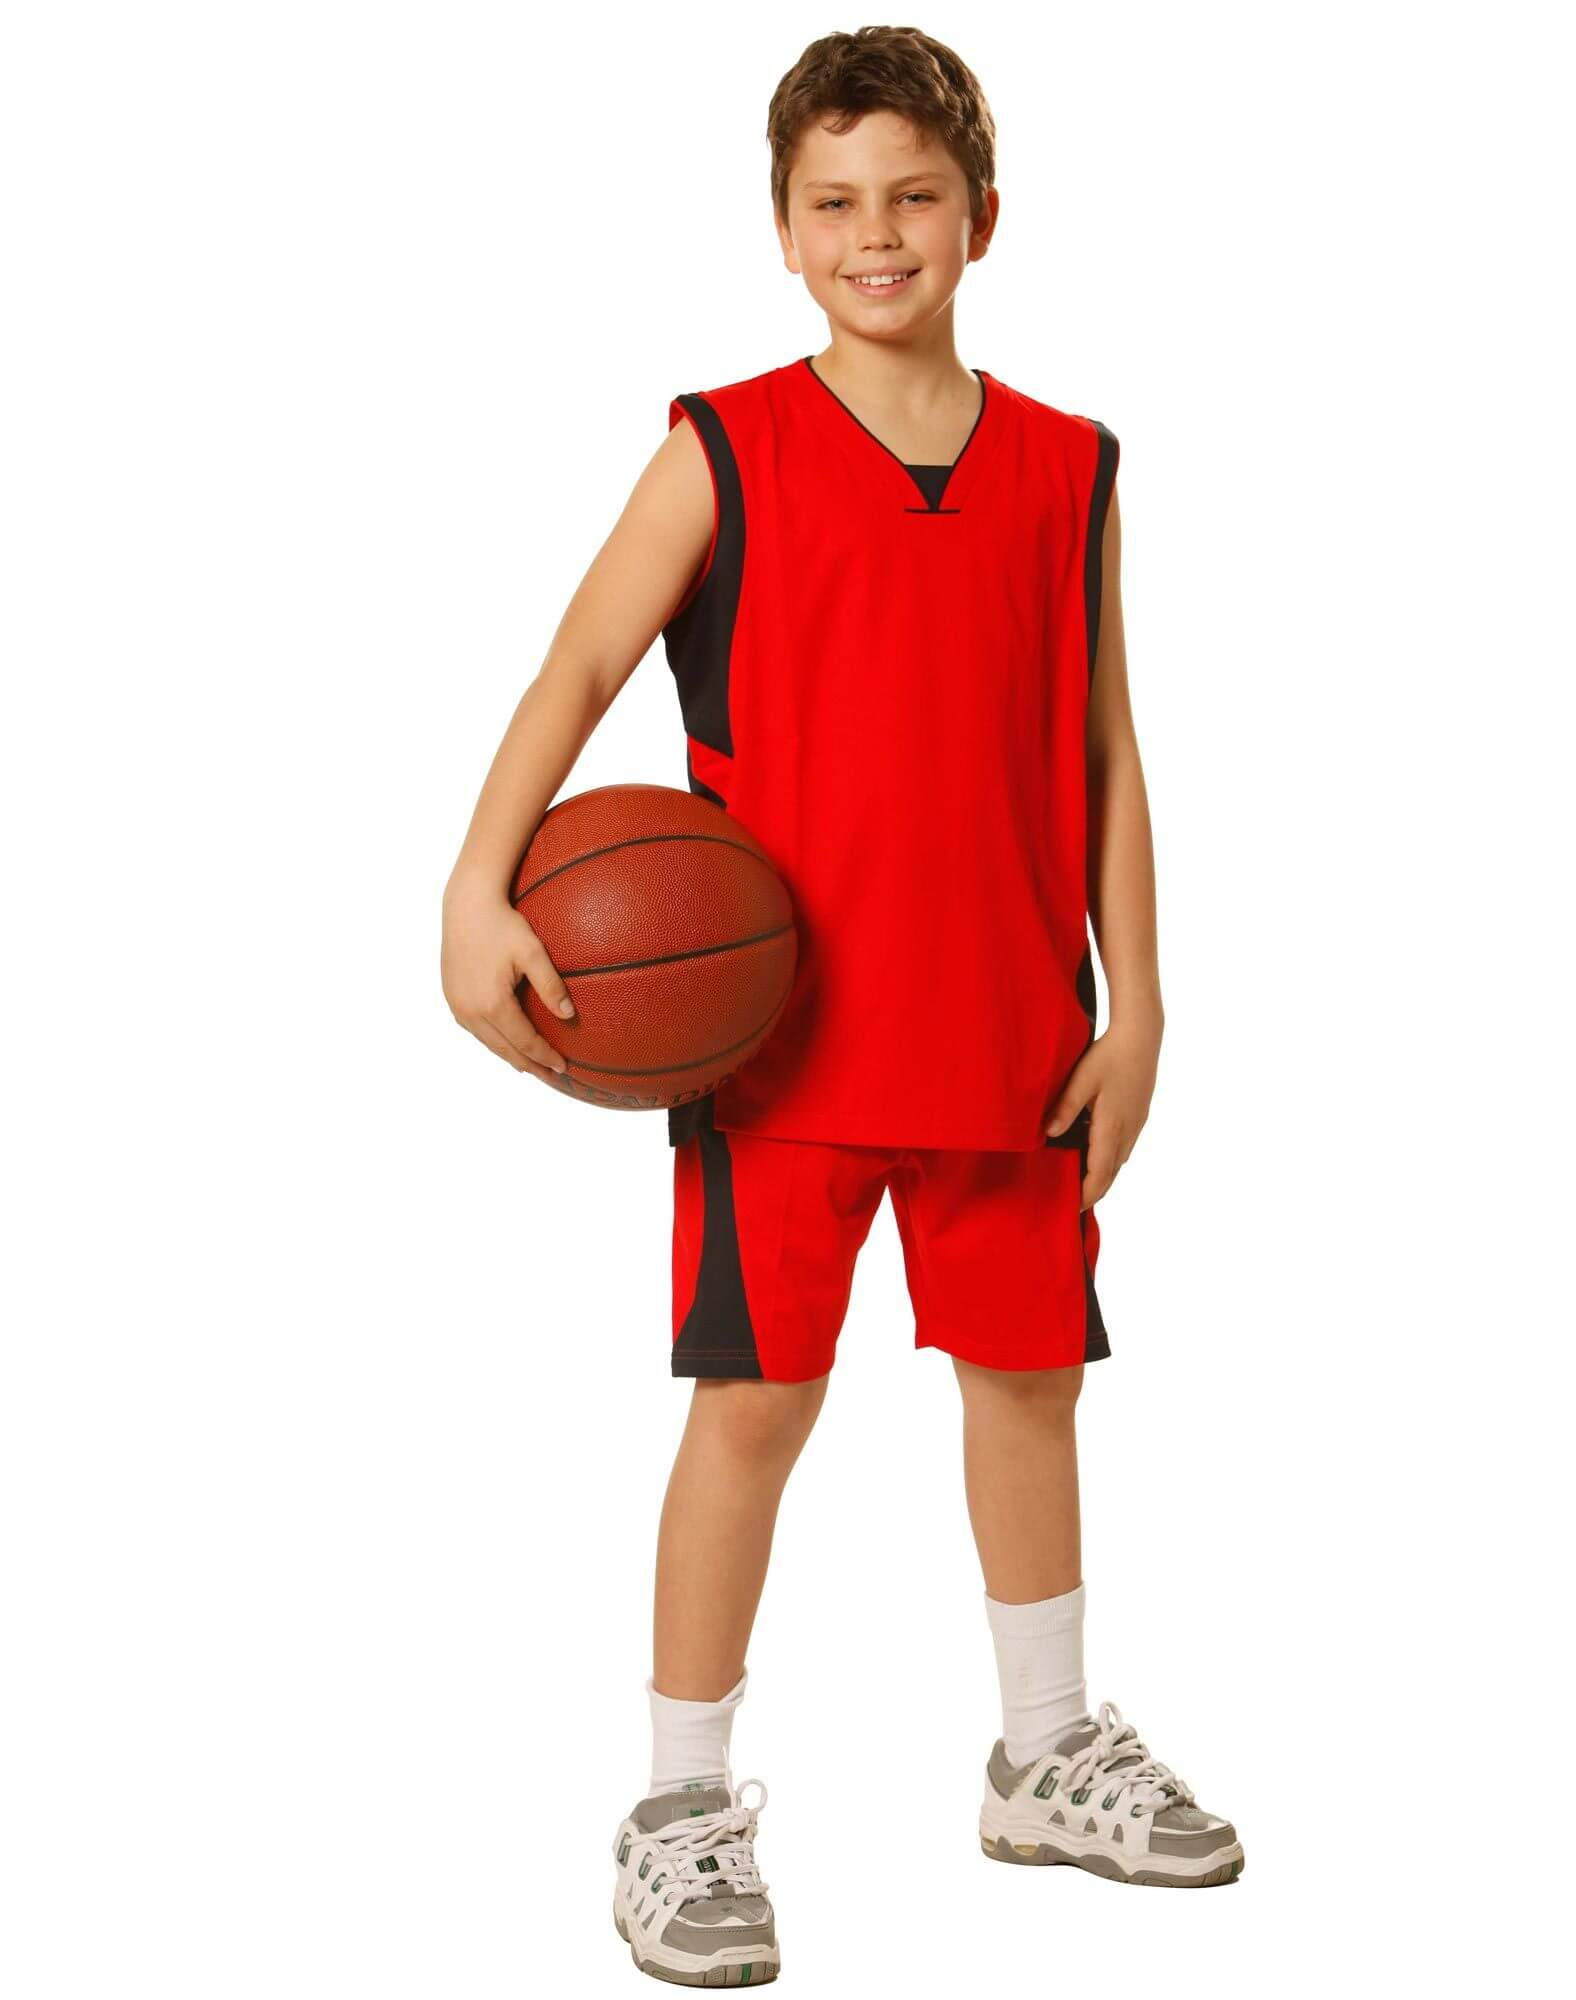 Kids Basketball Jerseys Manufacturers in Surat